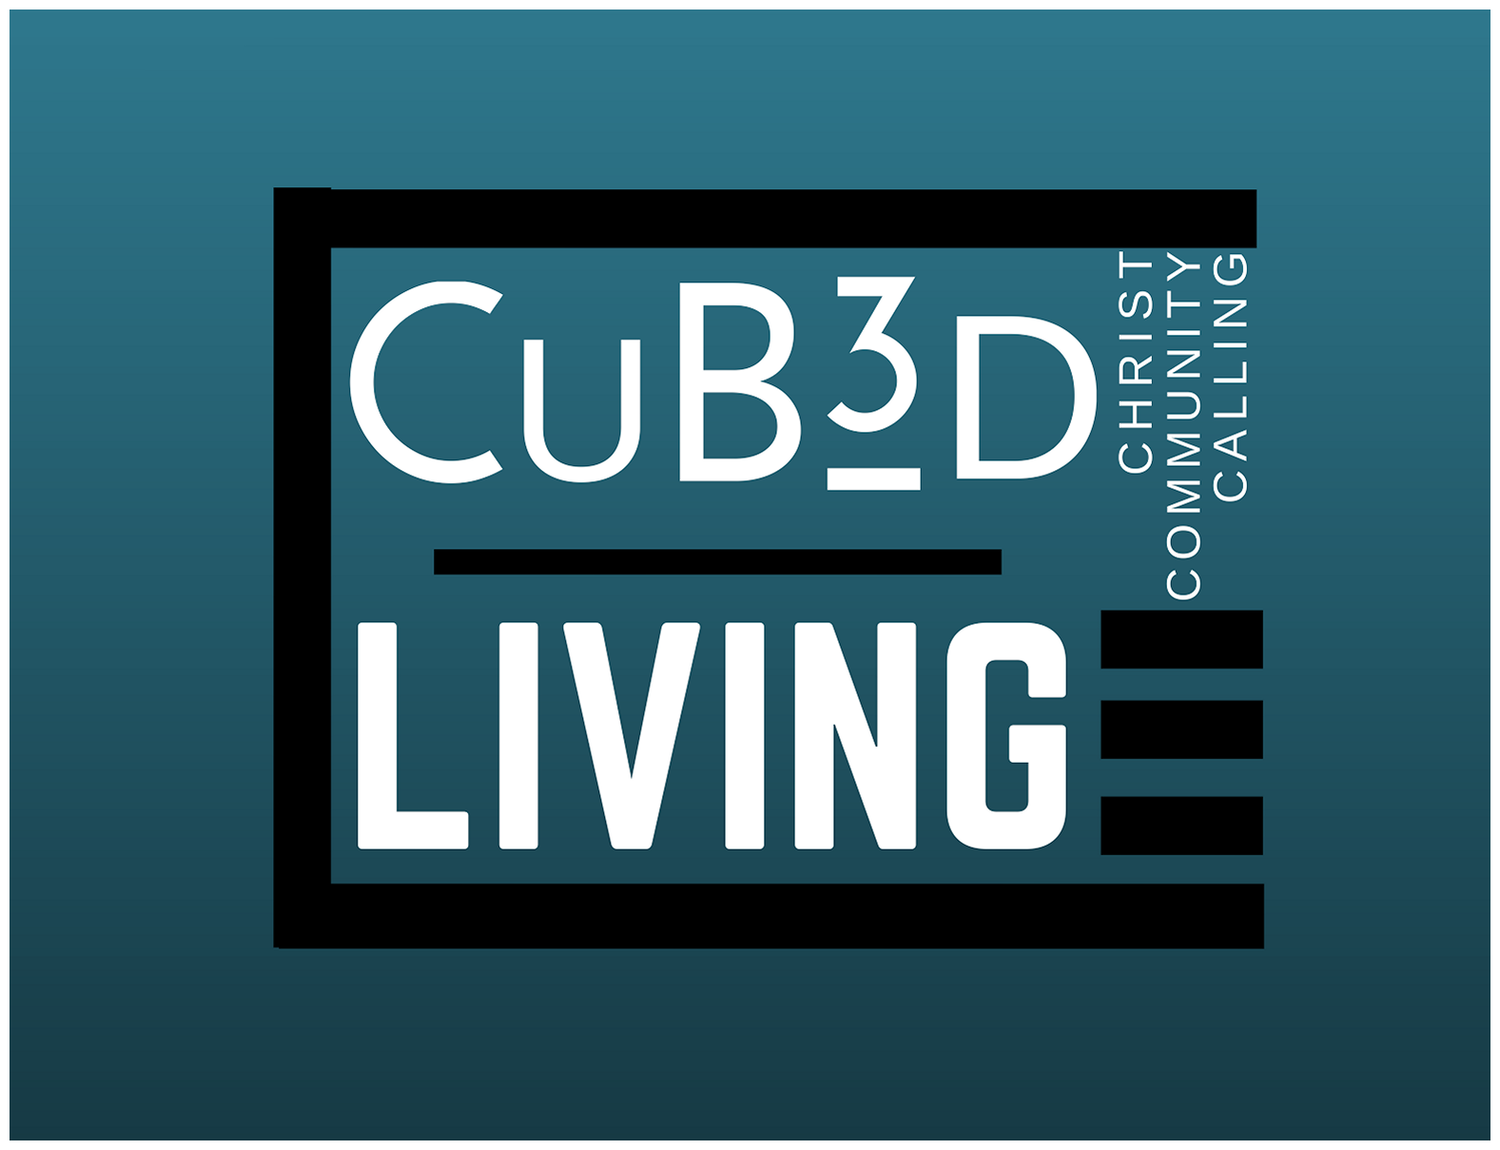 Cubed Living